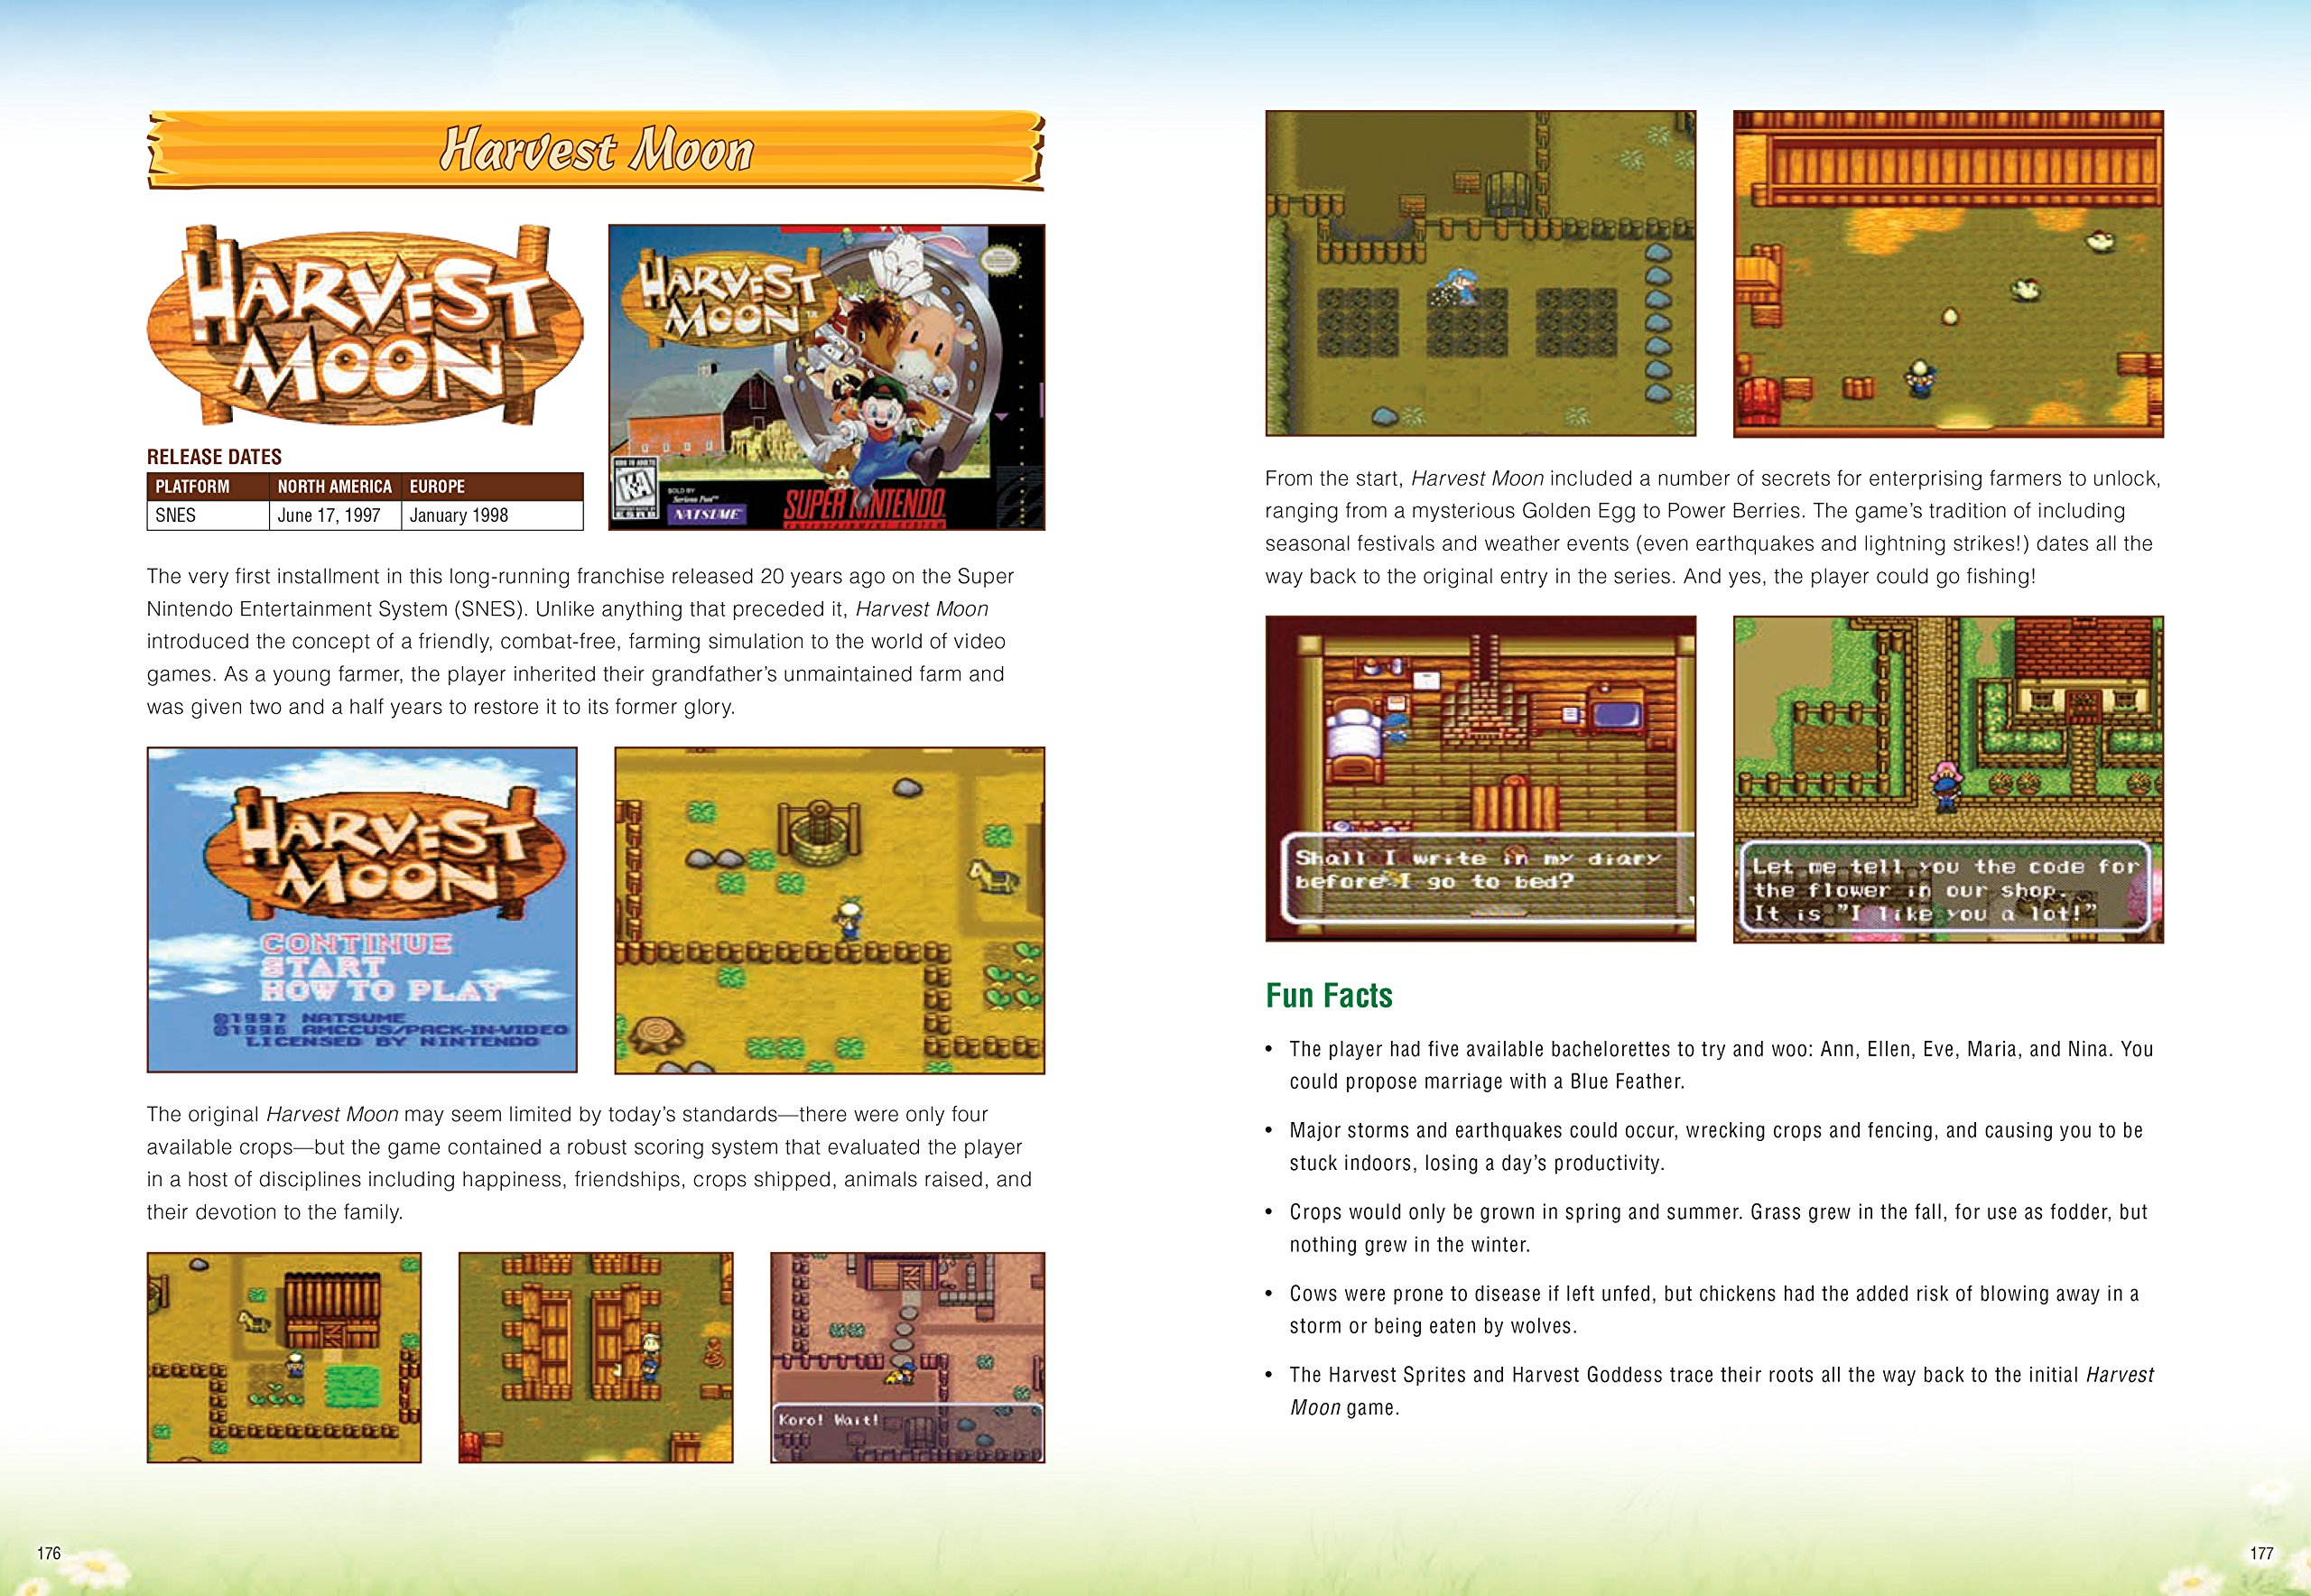 harvest moon light of hope a 20th anniversary celebration official collectors edition guide doug walsh prima games 9780744019568 amazoncom books